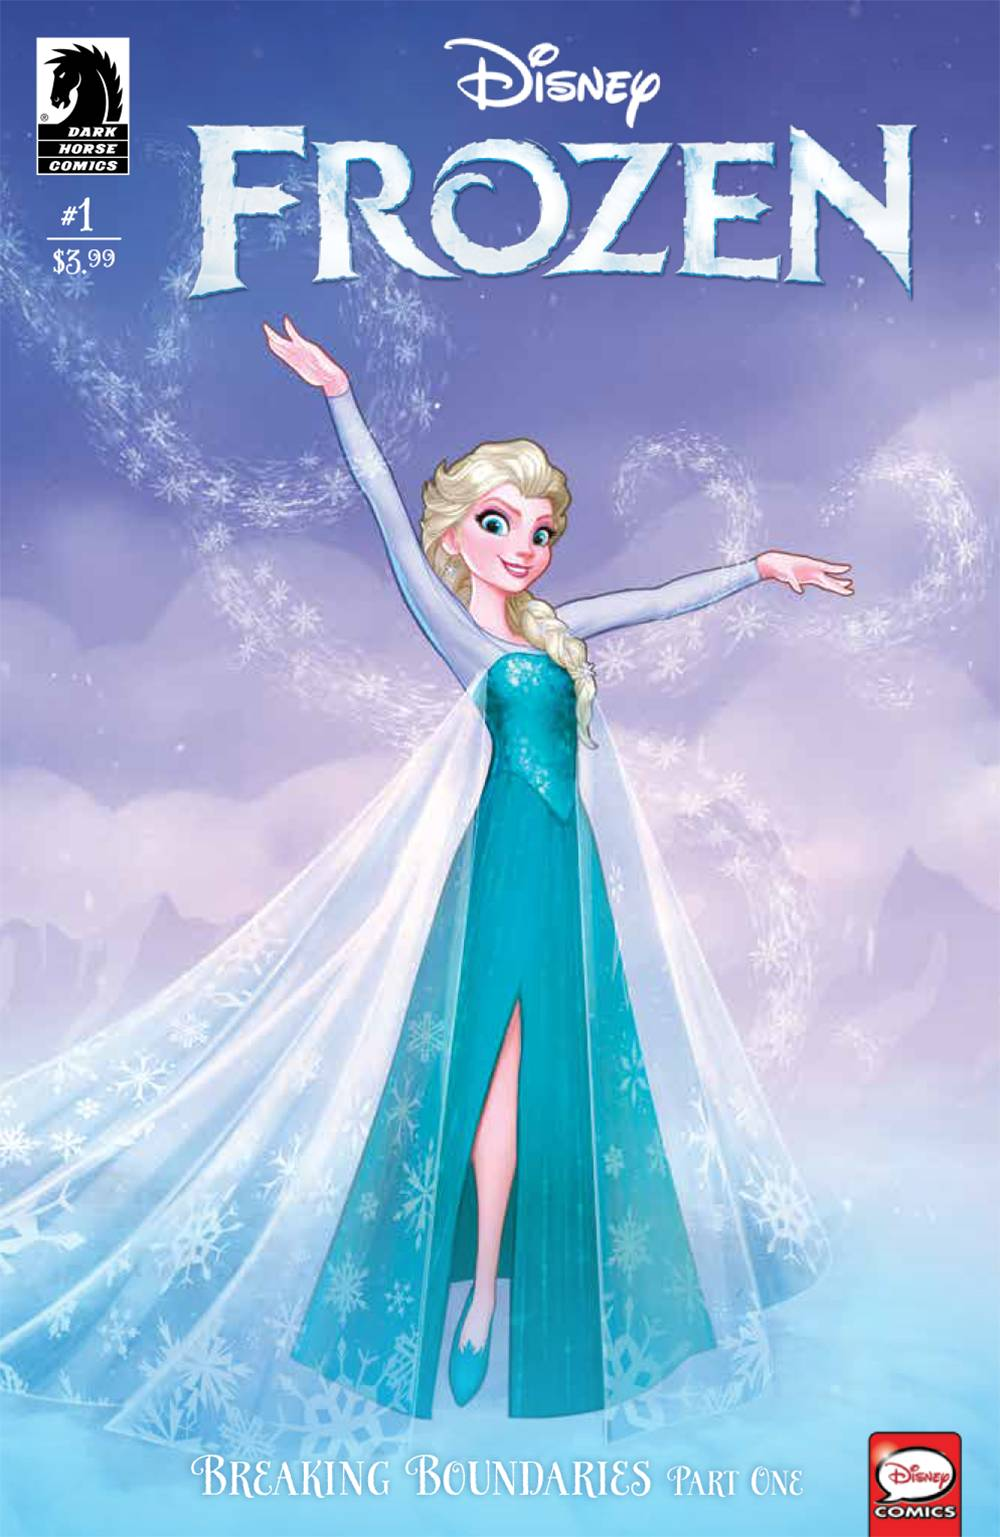 DISNEY FROZEN BREAKING BOUNDARIES 1 FRANCISCO CVR.jpg